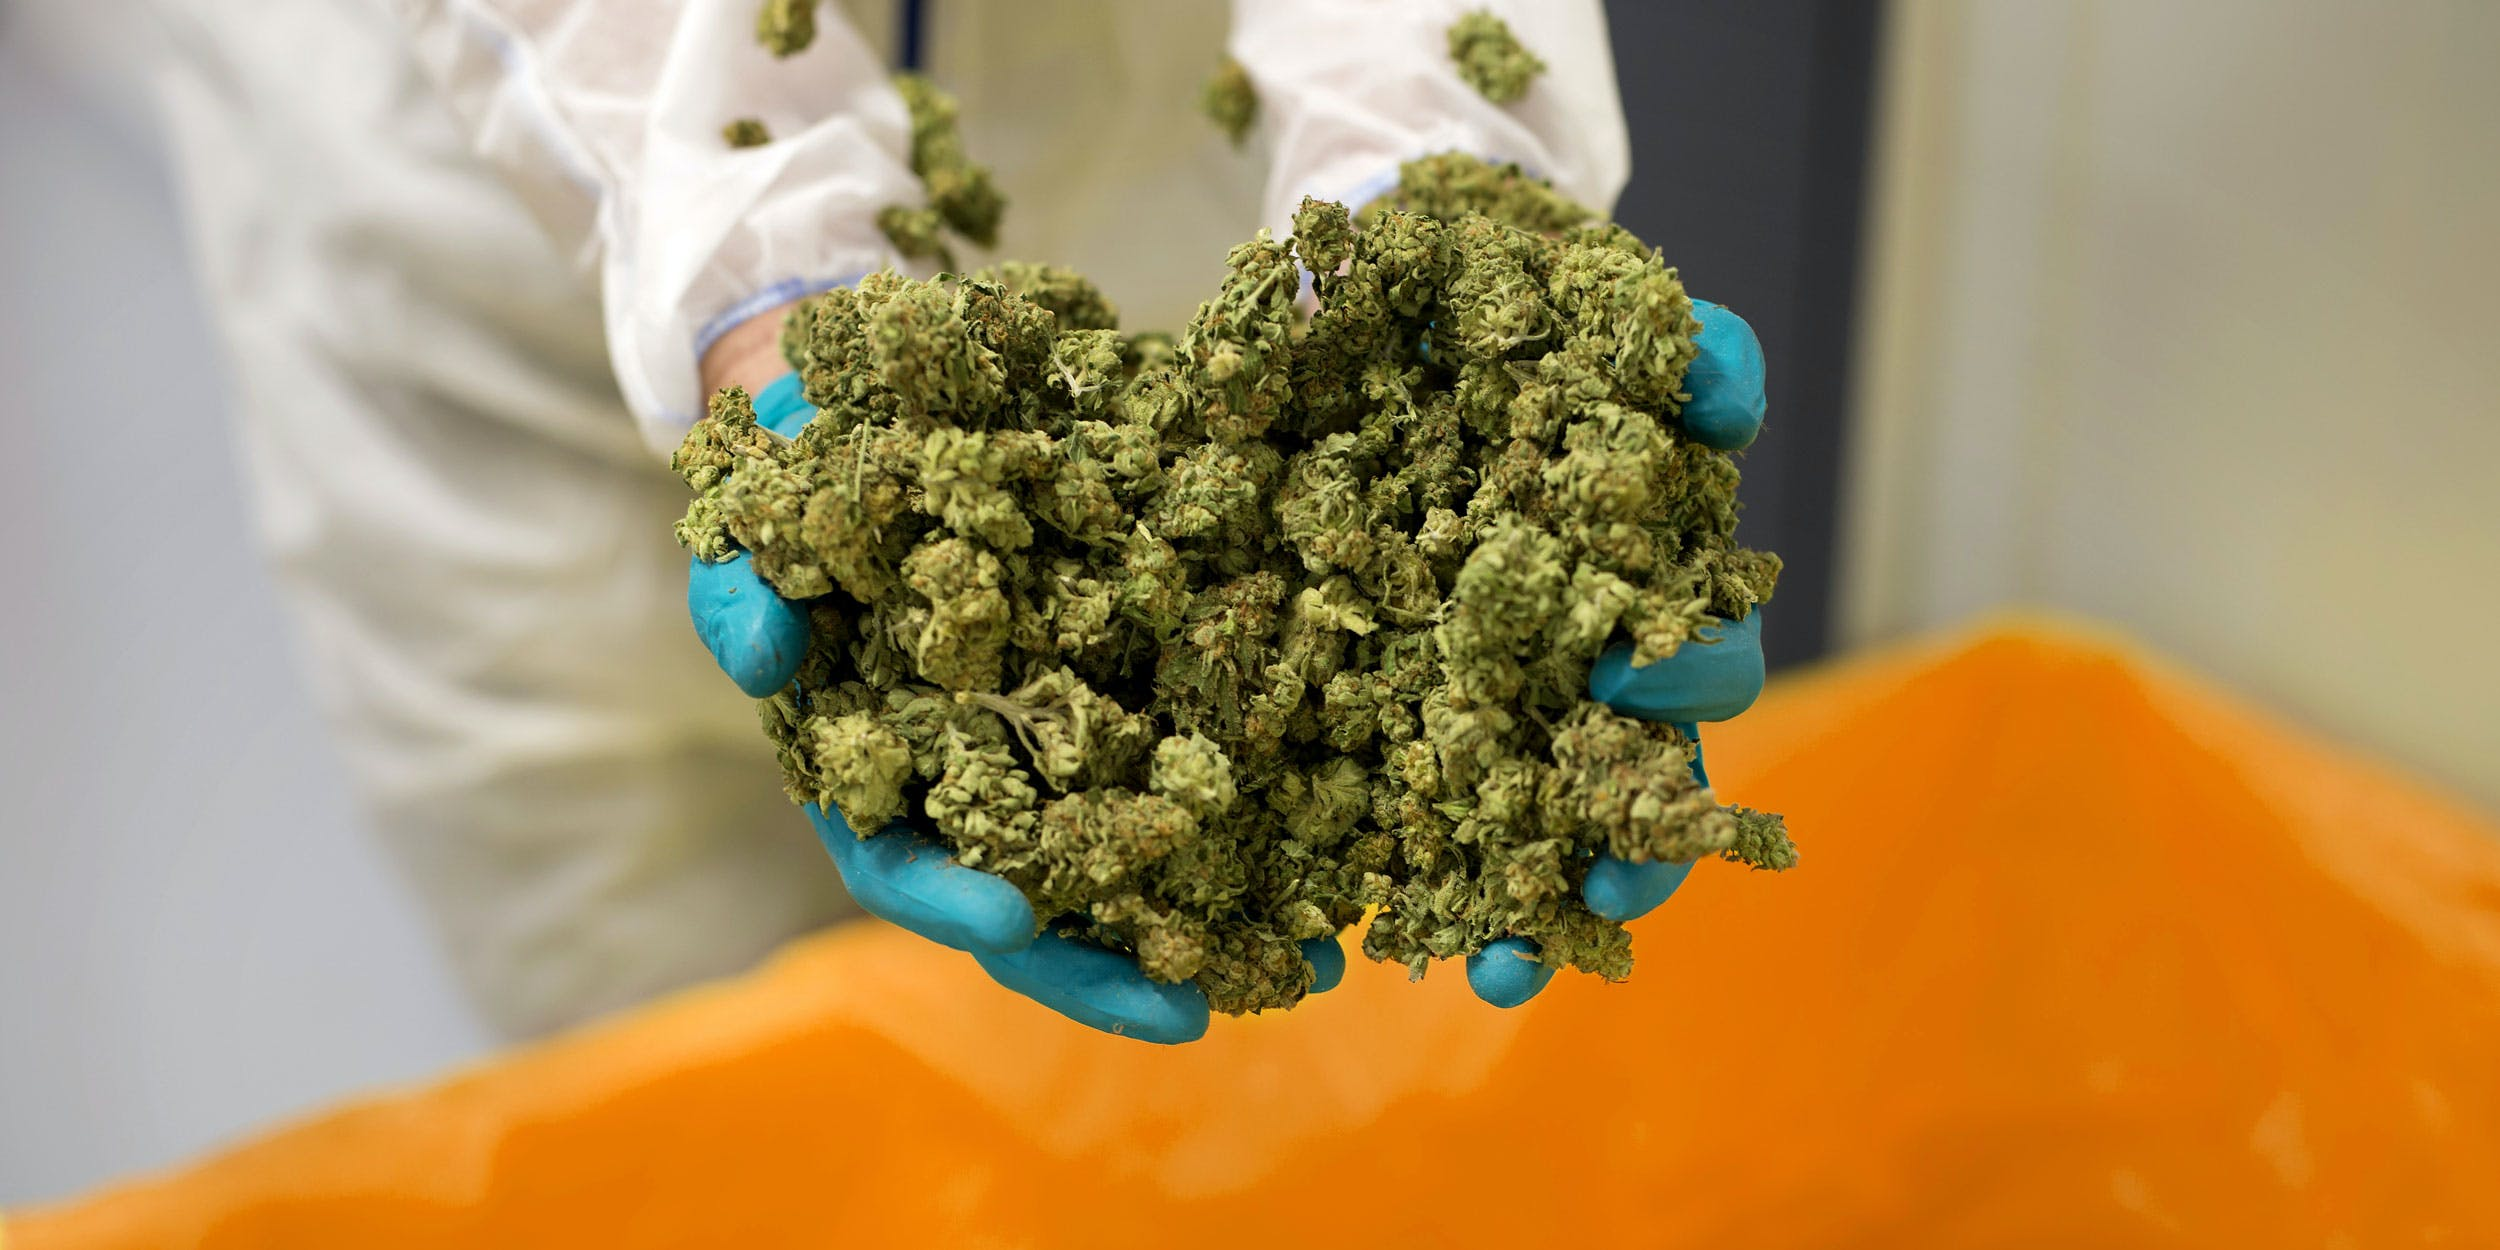 In this photo, an employee displays cannabis buds for a photograph at the CannTrust Holding Inc. Niagara Perpetual Harvest facility in Pelham, Ontario, Canada, on Wednesday, July 11, 2018. Legalization in Canada is set to go into effect on October 17th. British Columbia dispensaries are concerned they won't have enough weed to stock their shelves by then.